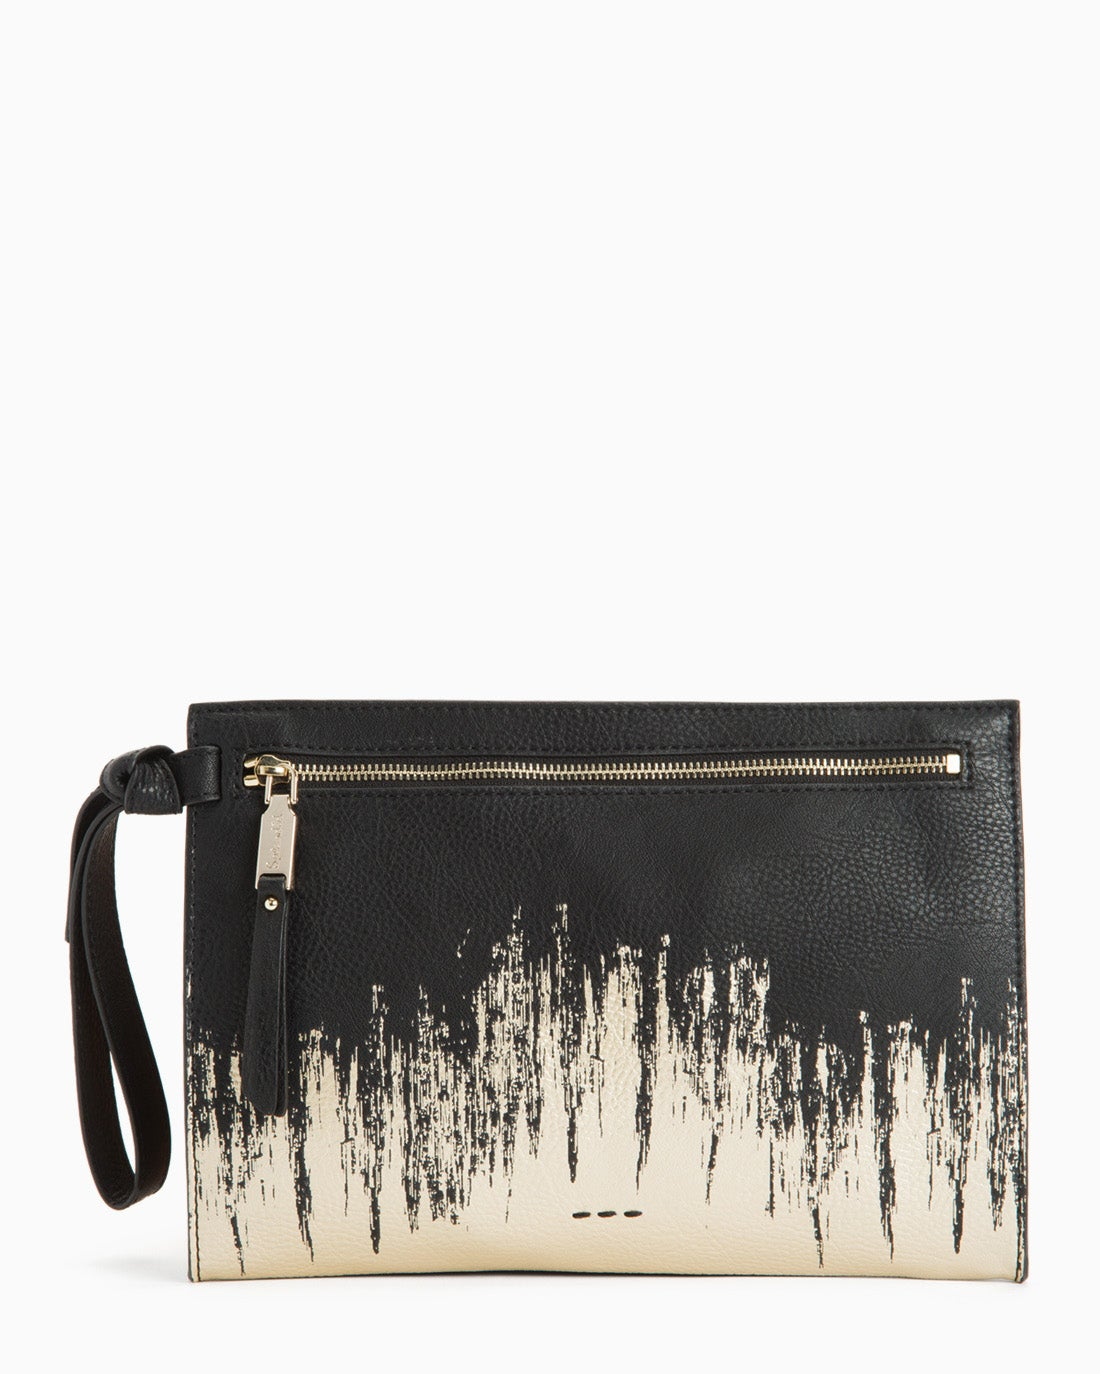 The Bodega Gilded Clutch boasts a bold painterly motif that's perfect for keeping your essentials in place while giving your look an aspirationally artistic appeal. Front zip closure Wrist strap